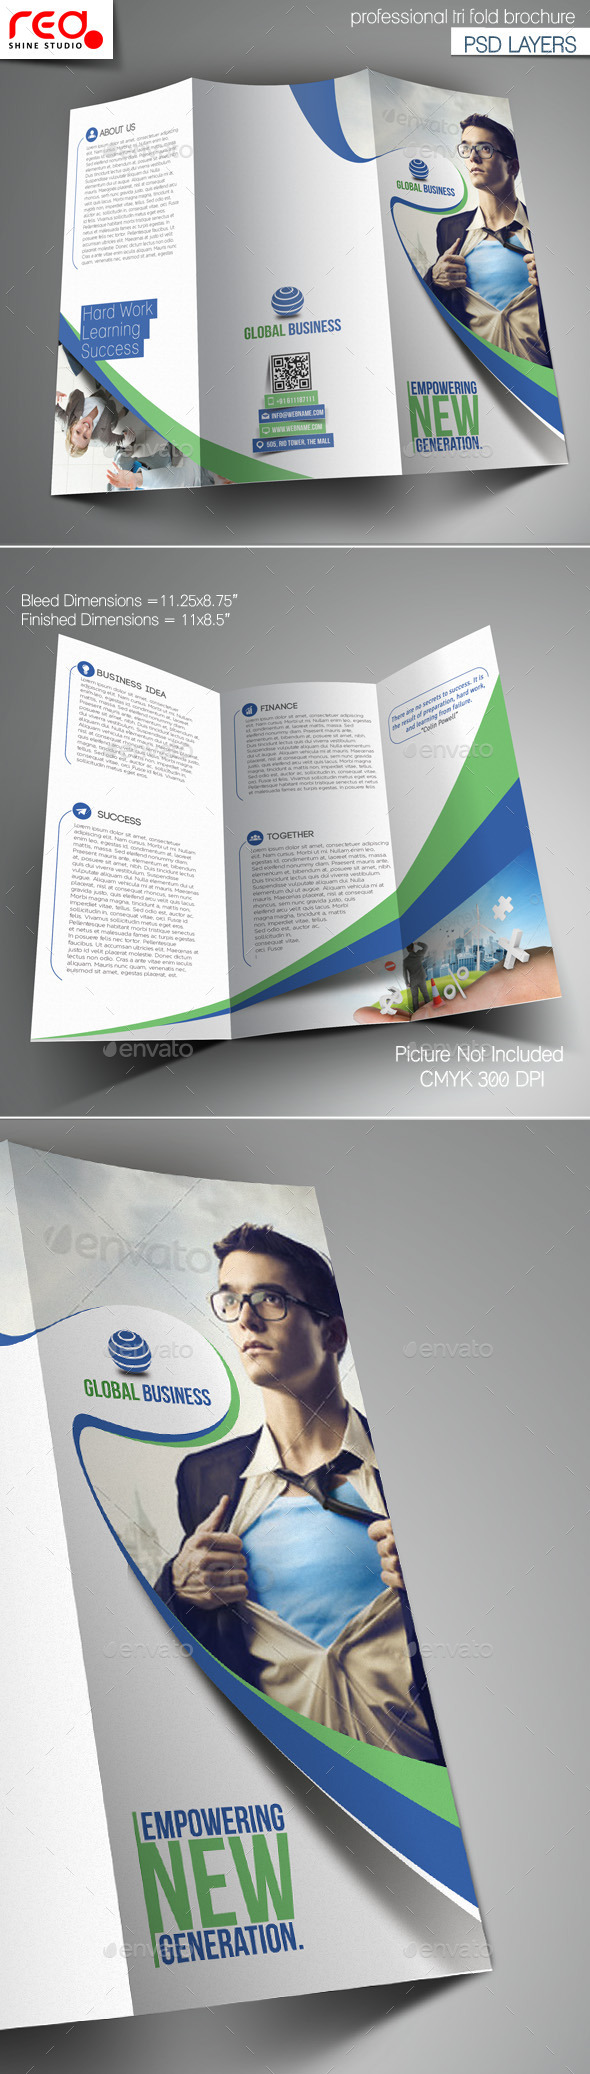 GraphicRiver Corporate Business Trifold Brochure Template 10817662